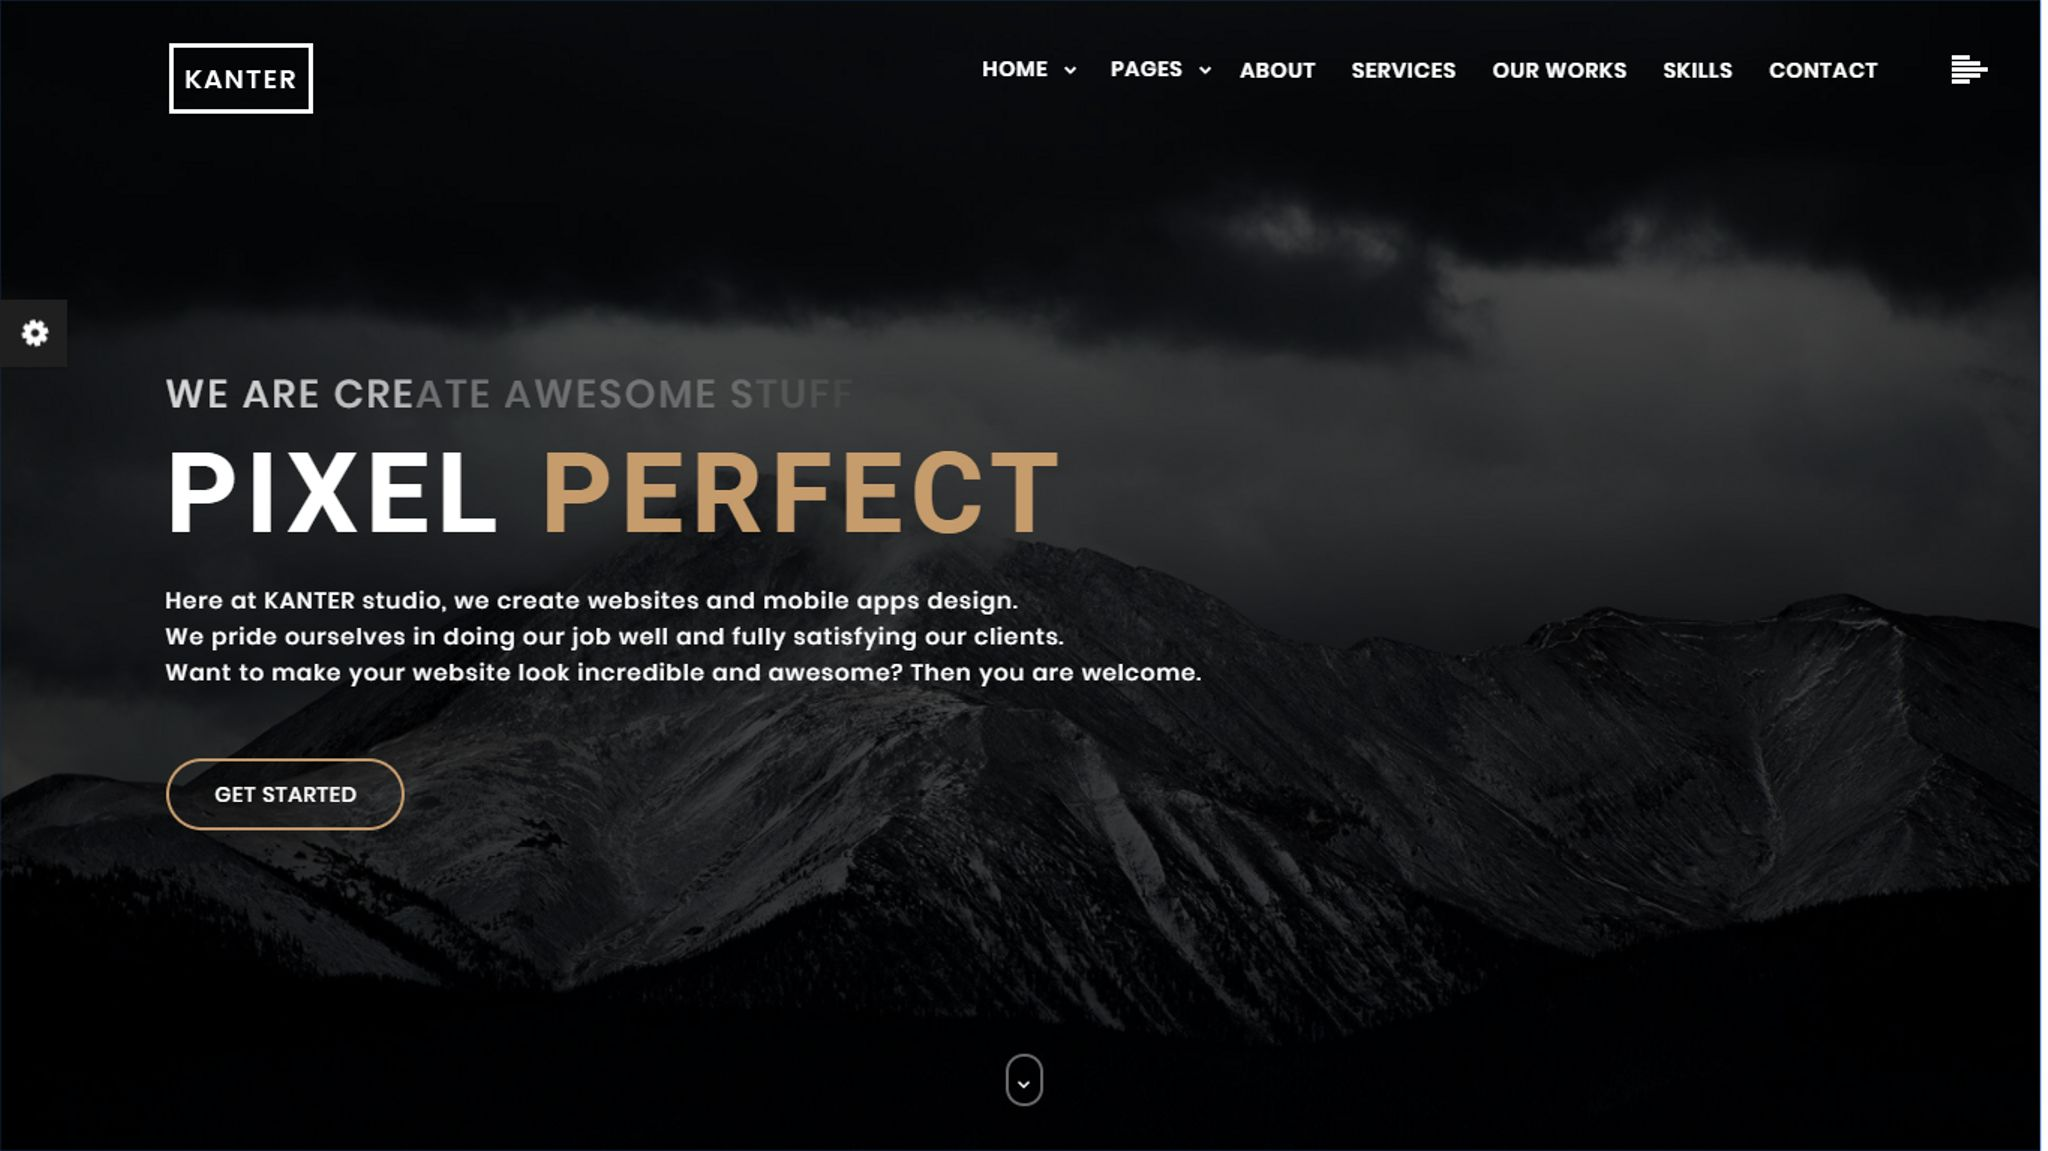 Kanter - Creative Responsive Minimalistic HTML Website Template #65438